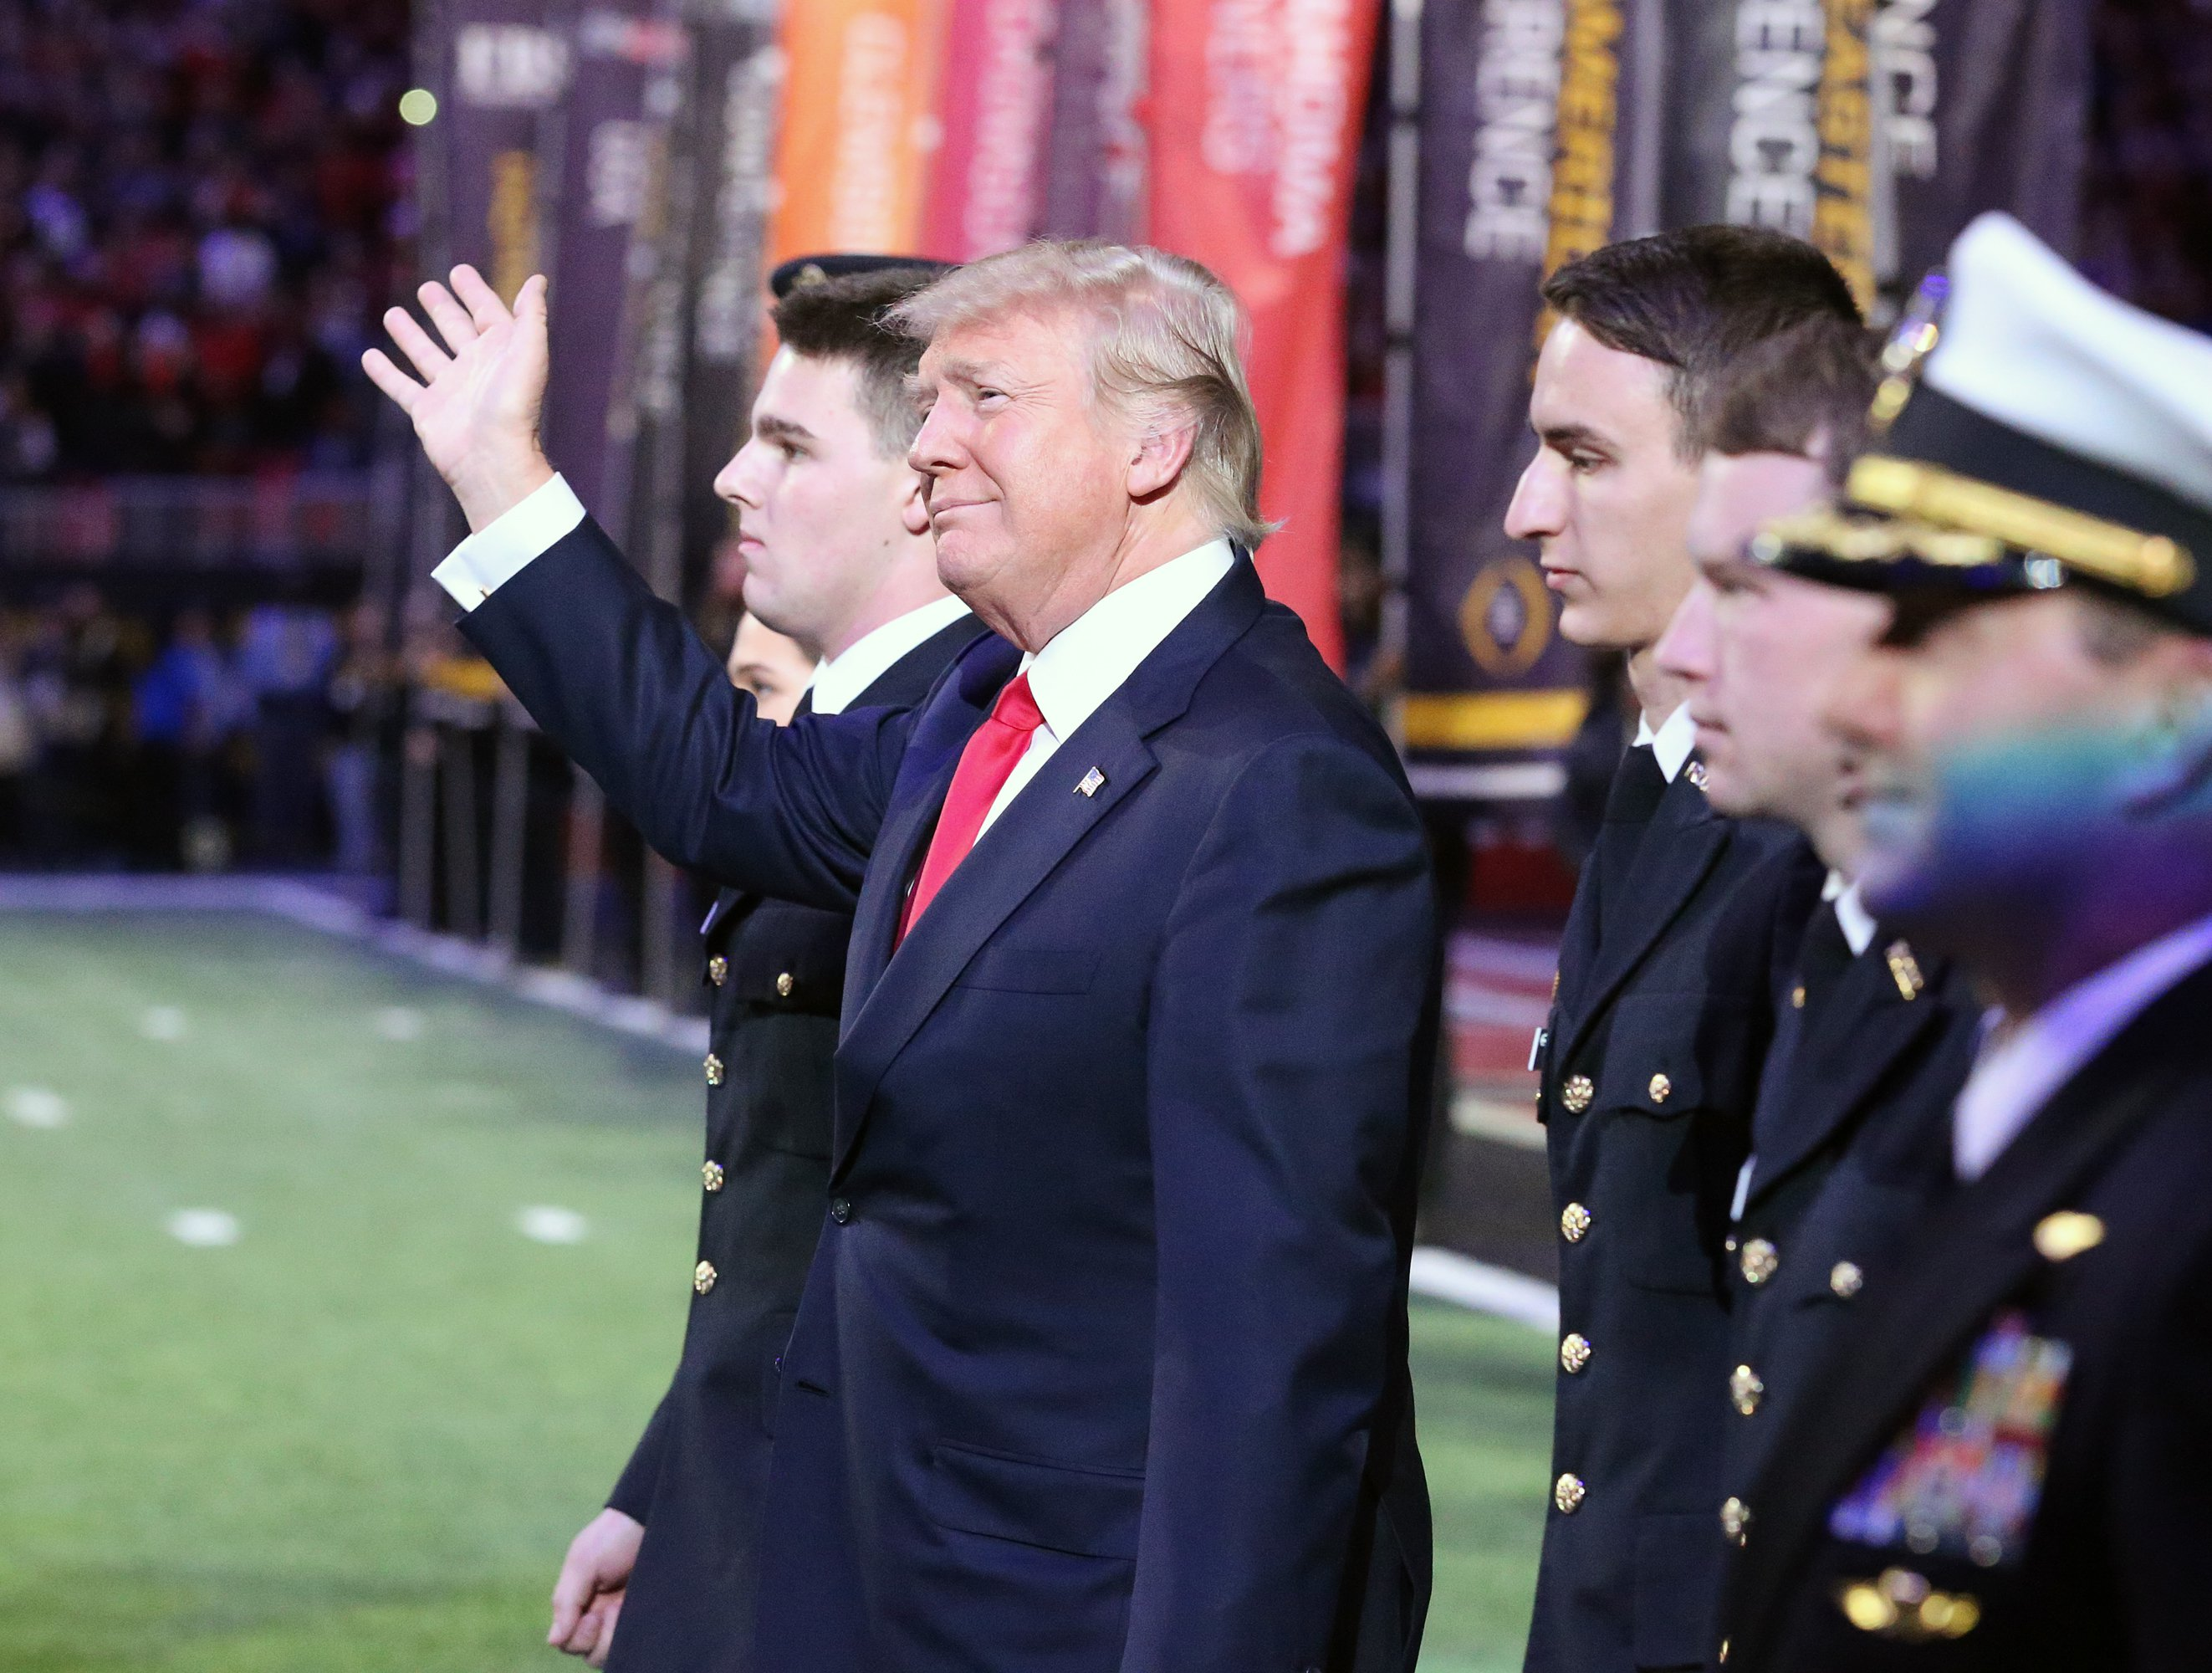 U.S. President Donald J. Trump enters the field for the national anthem